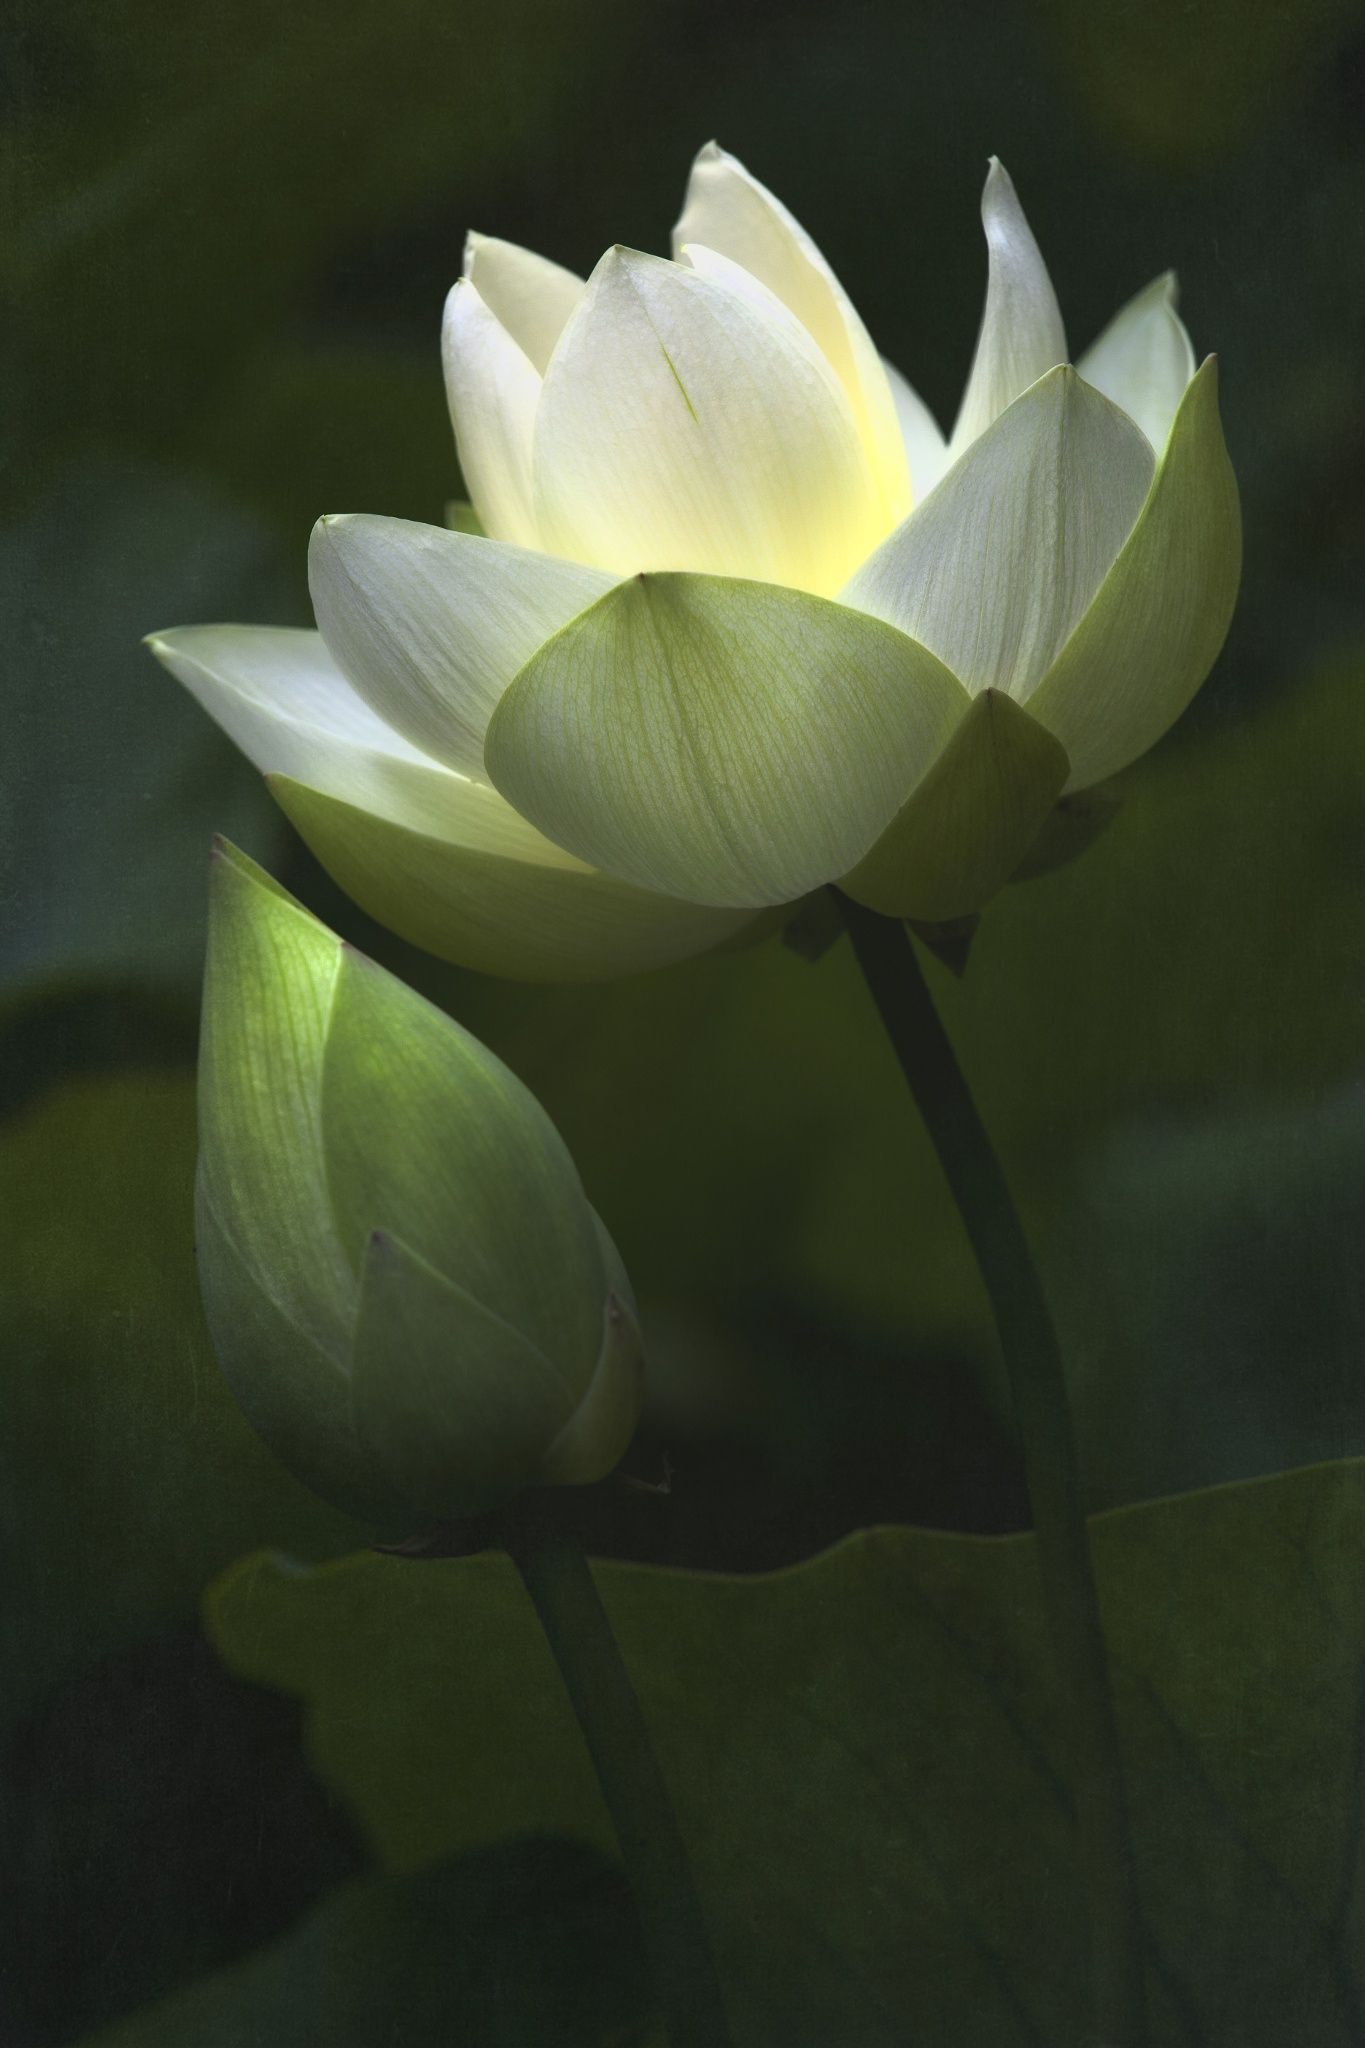 Beautiful White Lotus A Symbol Of Our Soul Unfolding S H I N E